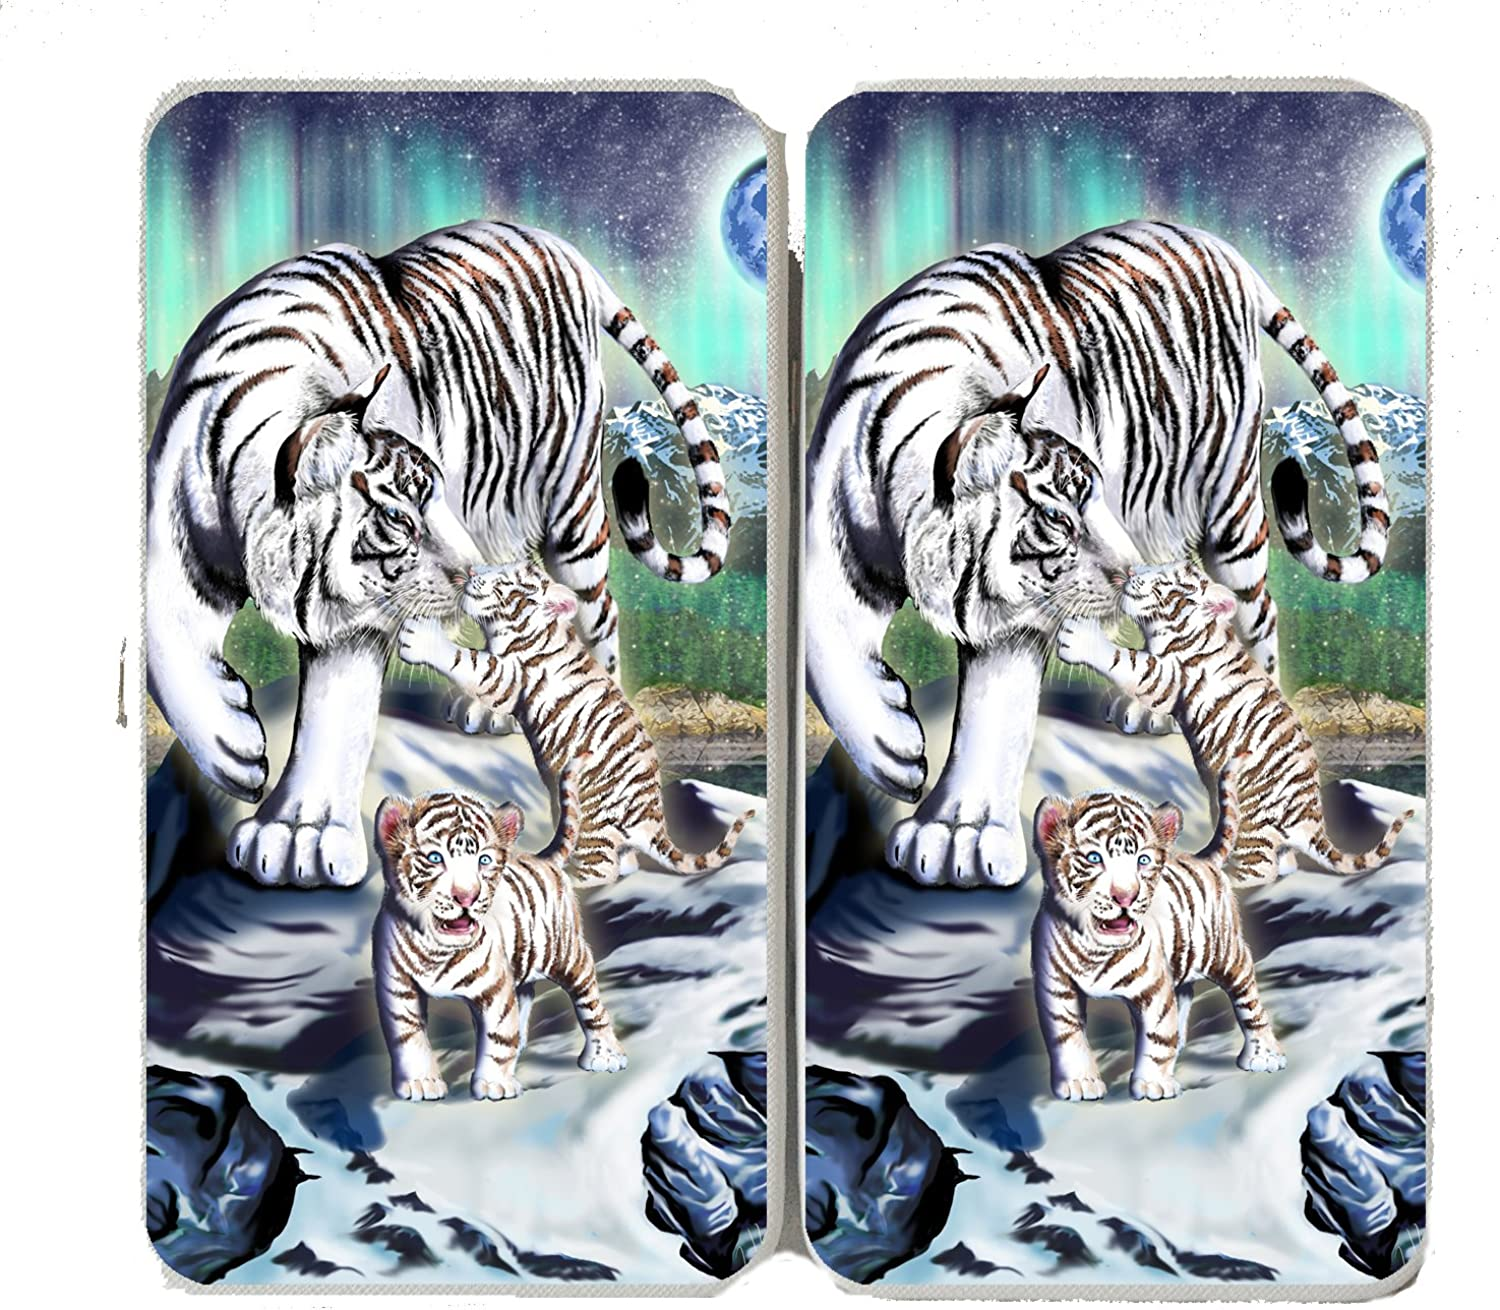 Big Cat White Tiger w  Cubs in Mountains  Taiga Hinge Wallet Clutch